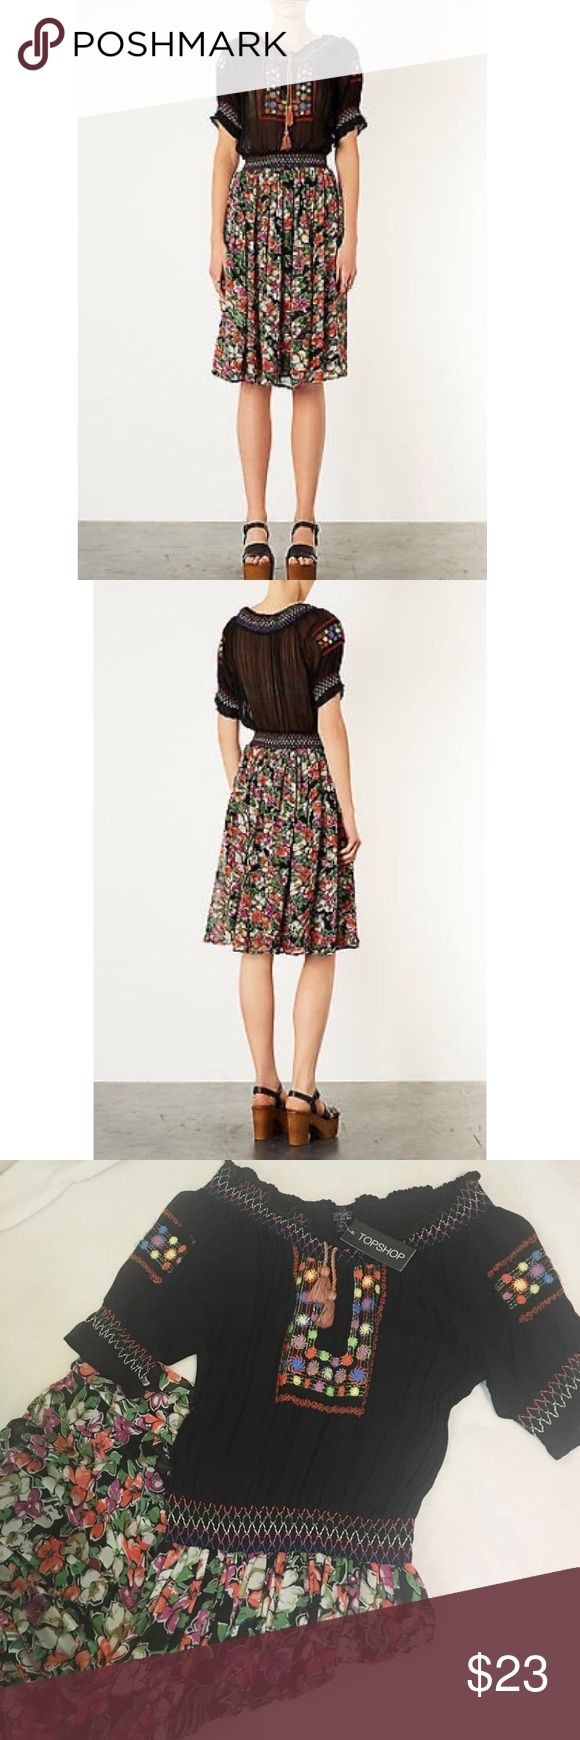 Top Shop Mexican Boho dress NWT. Top Shop woven midi dress! With multi-colour floral print floaty skirt. Gathered at the waist and a black smock top with multi color embroidery and tie tassel. Topshop Dresses Midi